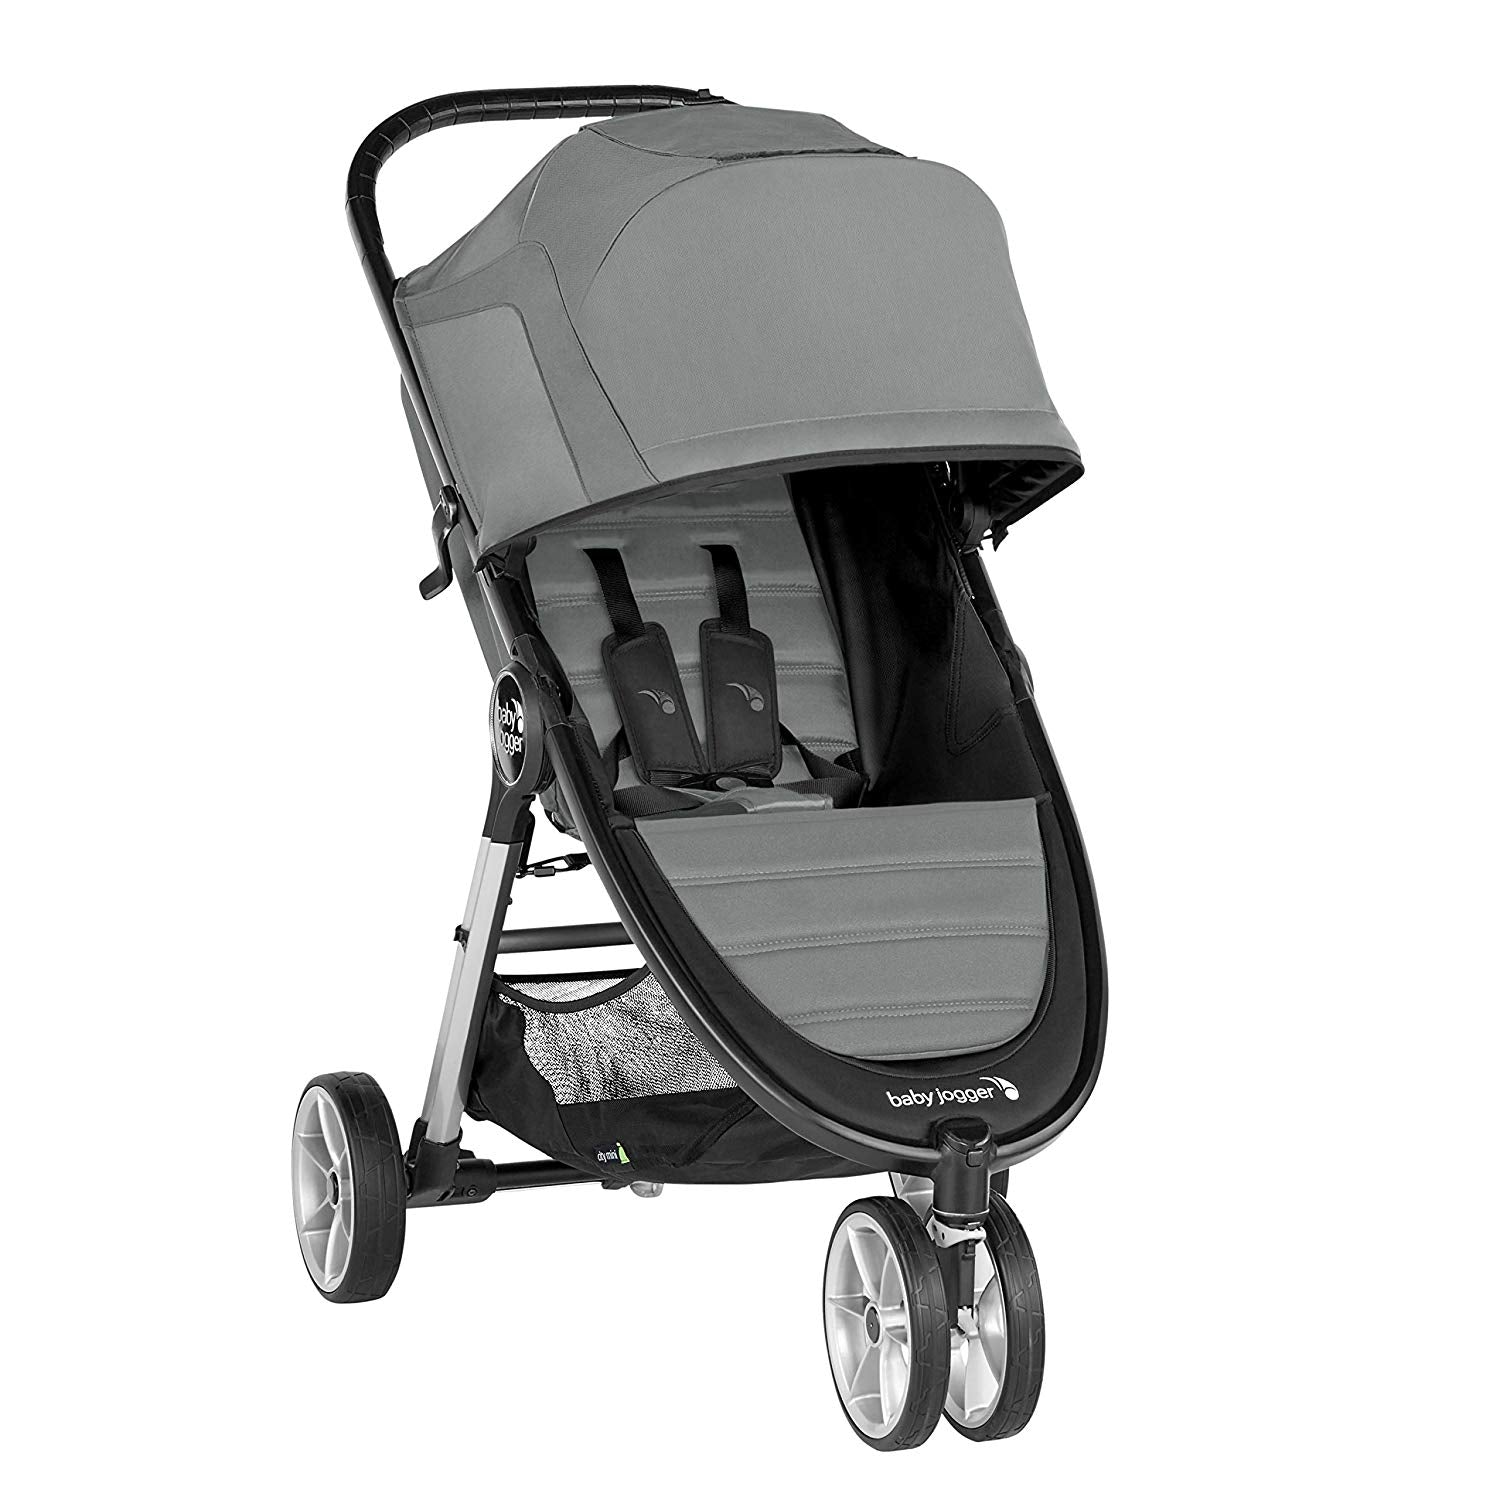 Prams Amp Strollers Ttn Baby Warehouse